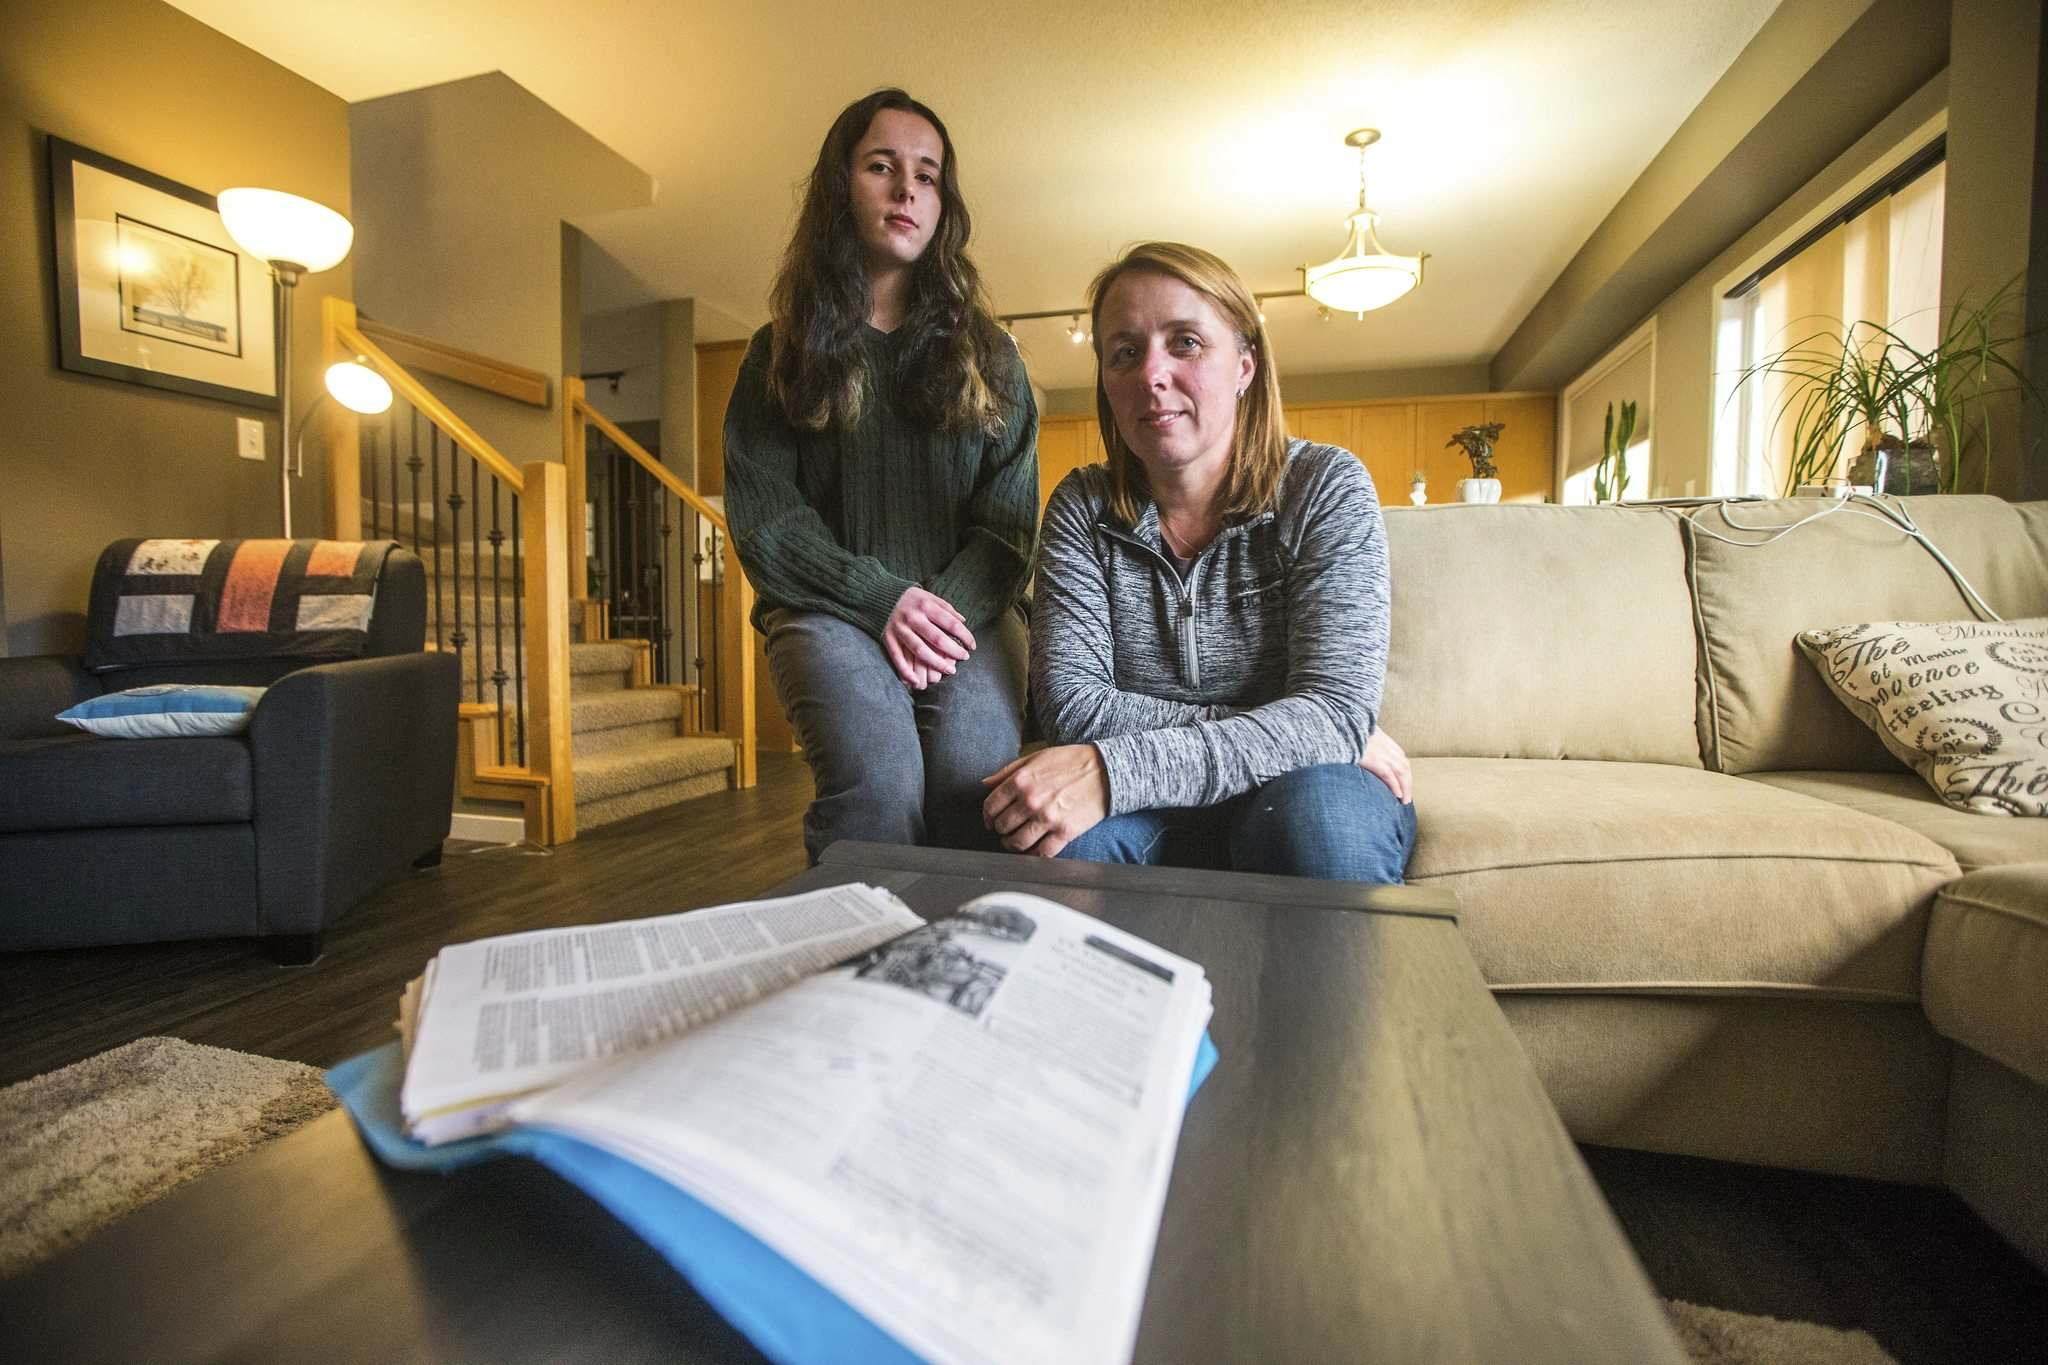 MIKAELA MACKENZIE / WINNIPEG FREE PRESS</p><p>Andrea Dodgson, with her daughter, Katie, has received $2,000 of the approximately $4,500 she says she's owed for her daughter's cancelled trip to Europe.</p></p>